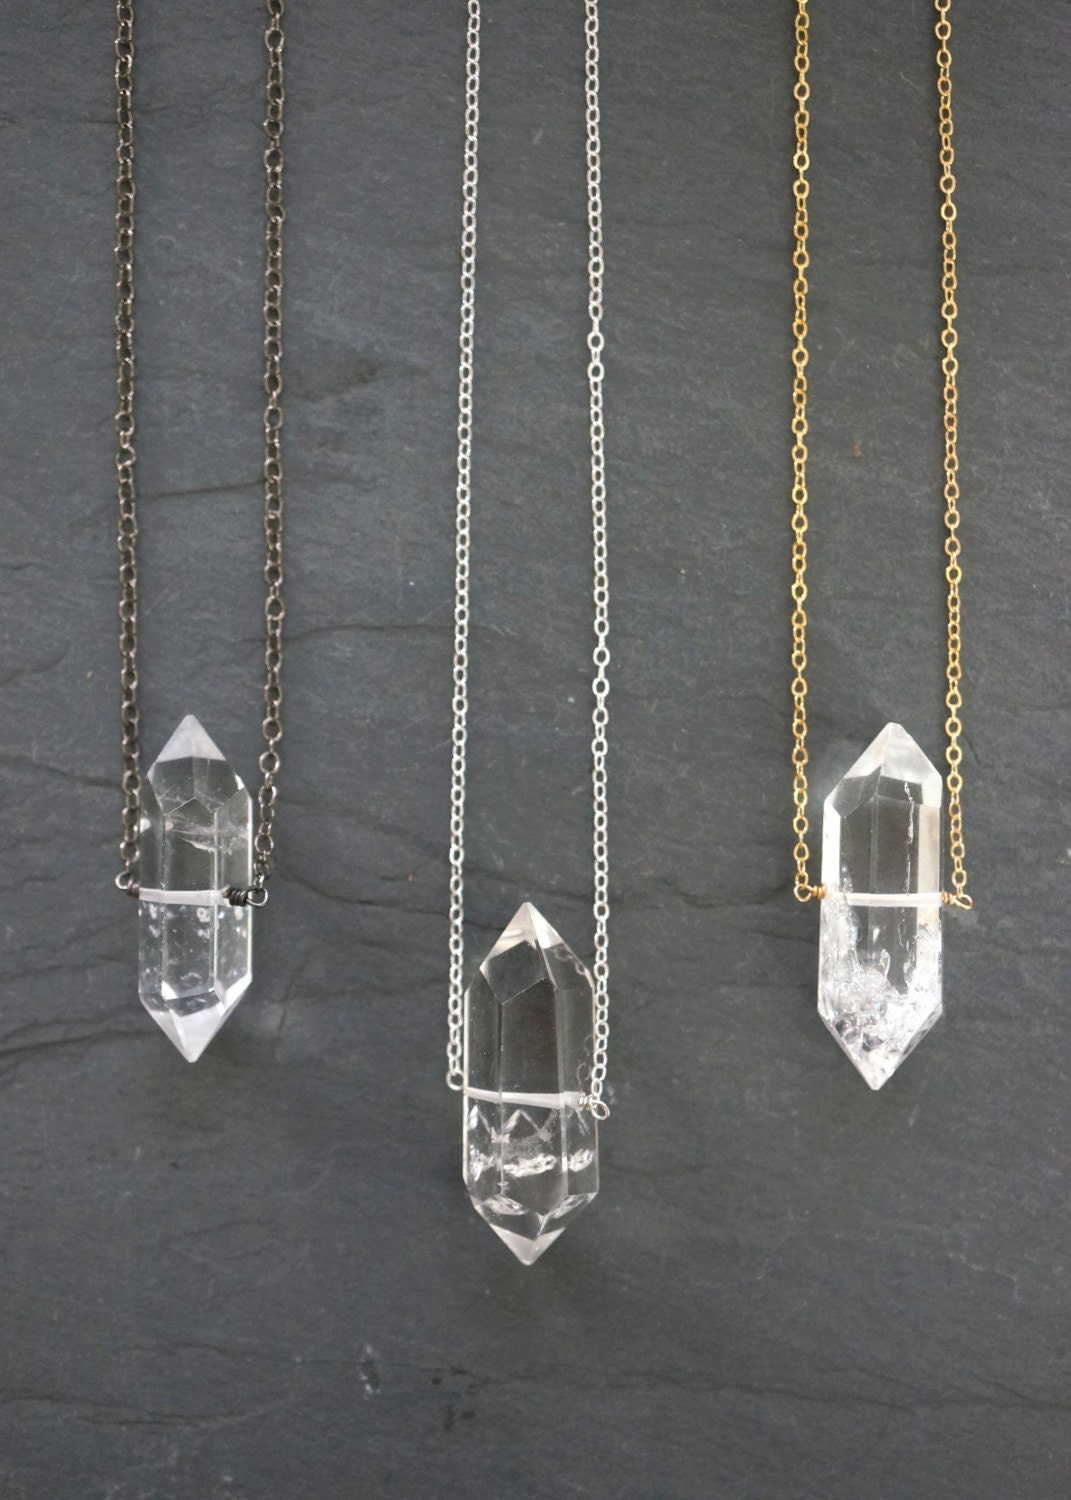 how to make jewelry with quartz crystals